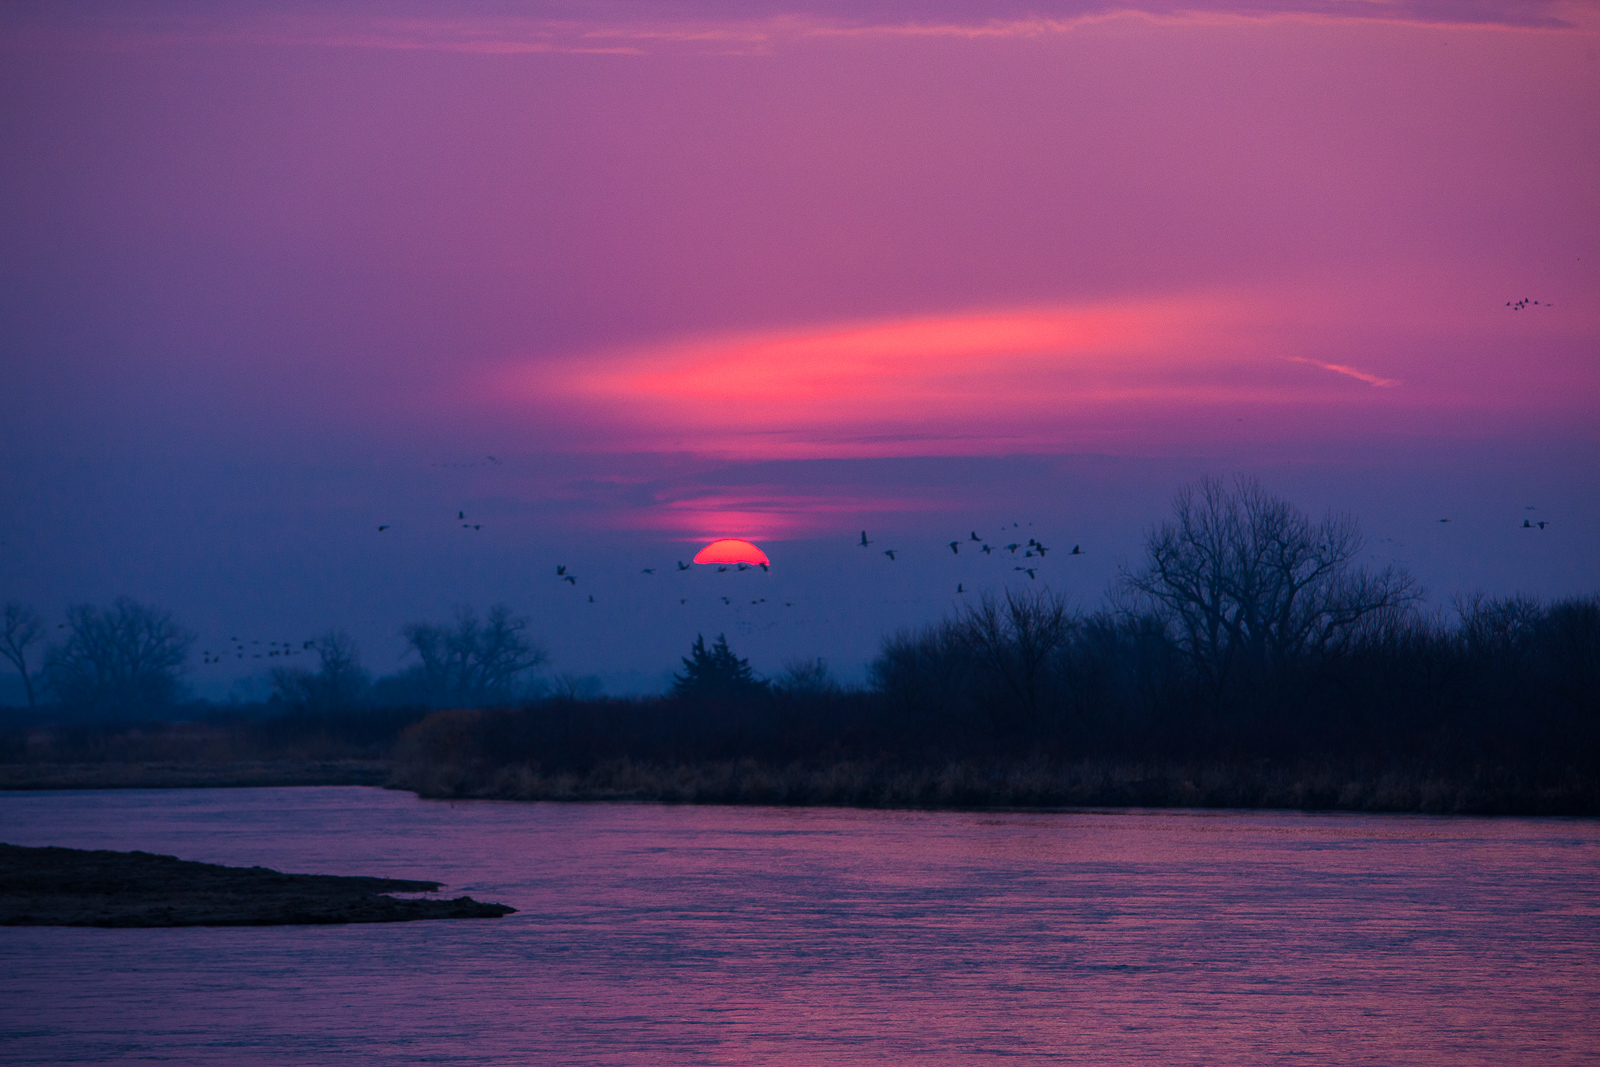 Sandhill cranes come in for a landing as the sun sets along the Platte River, one of the largest migration points in North America...